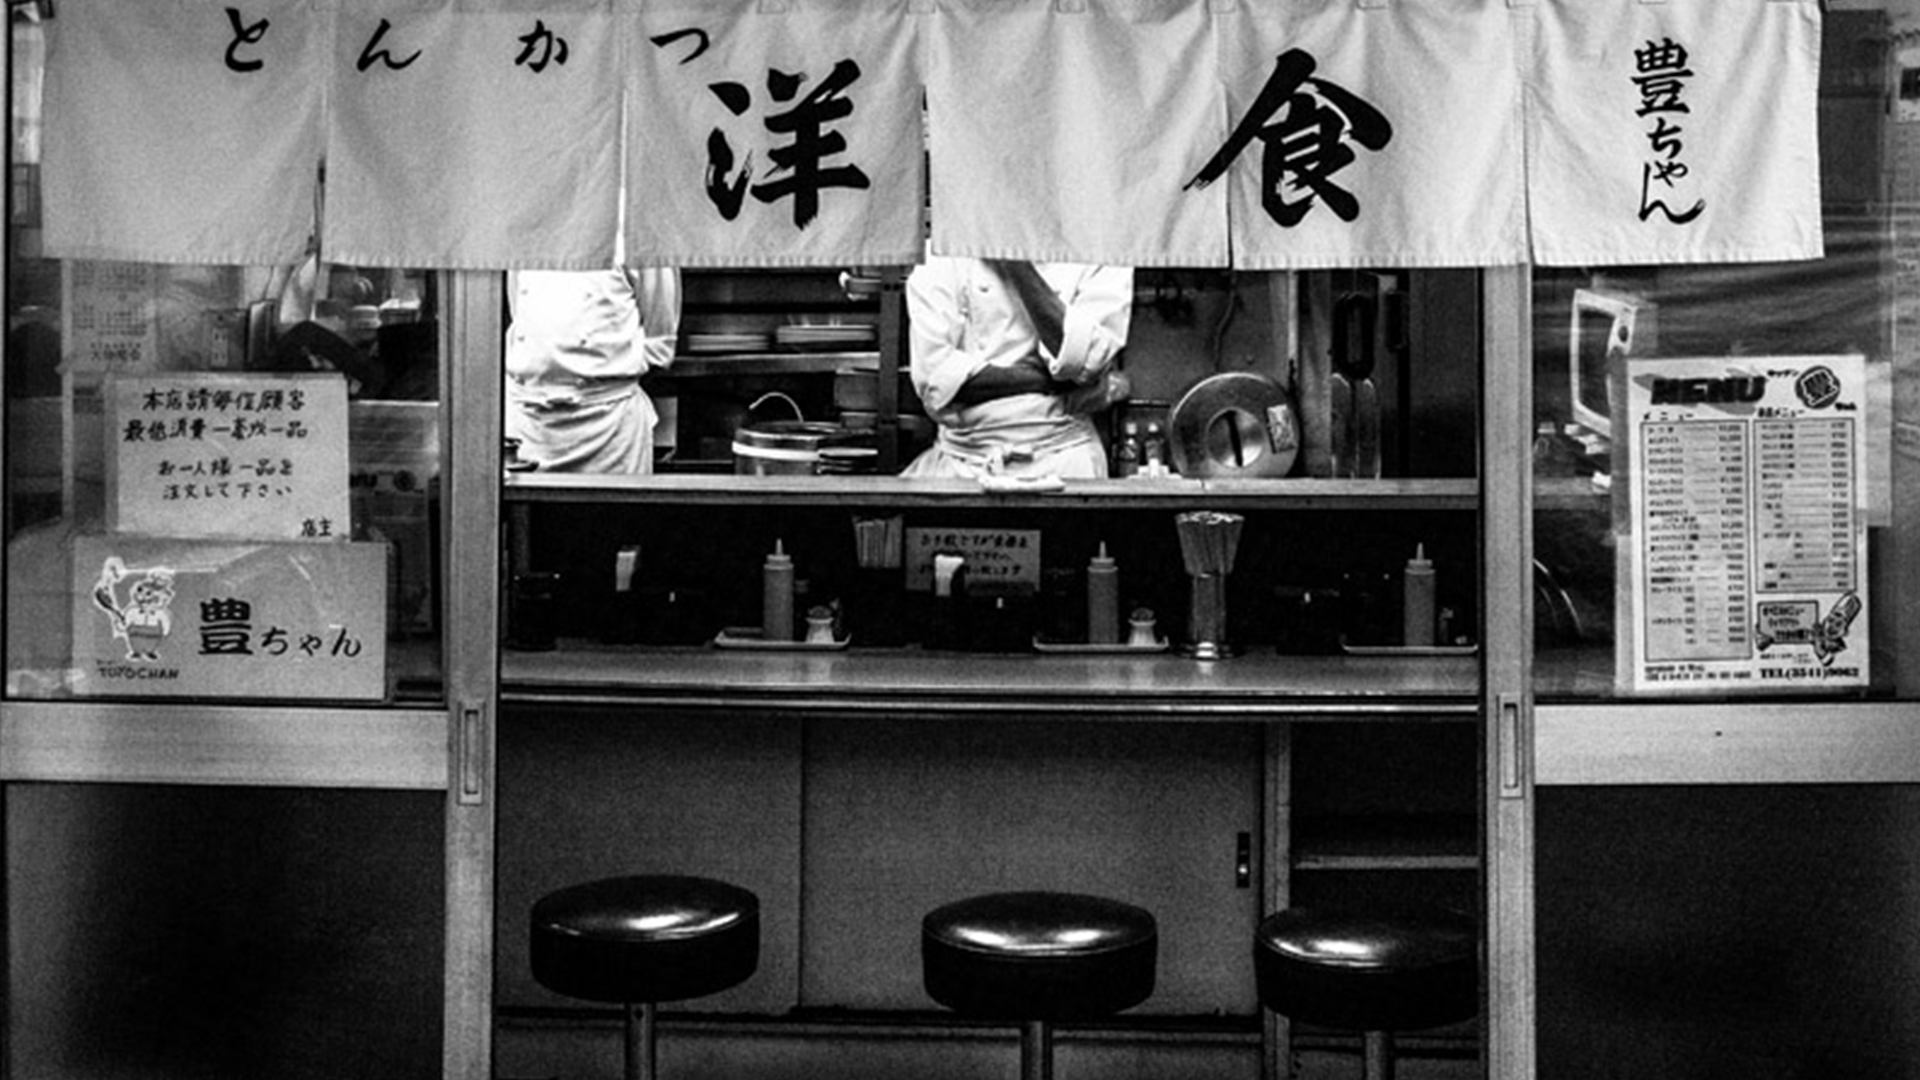 Workers at the old Tsukiji fish market in Tokyo, black and white photo.